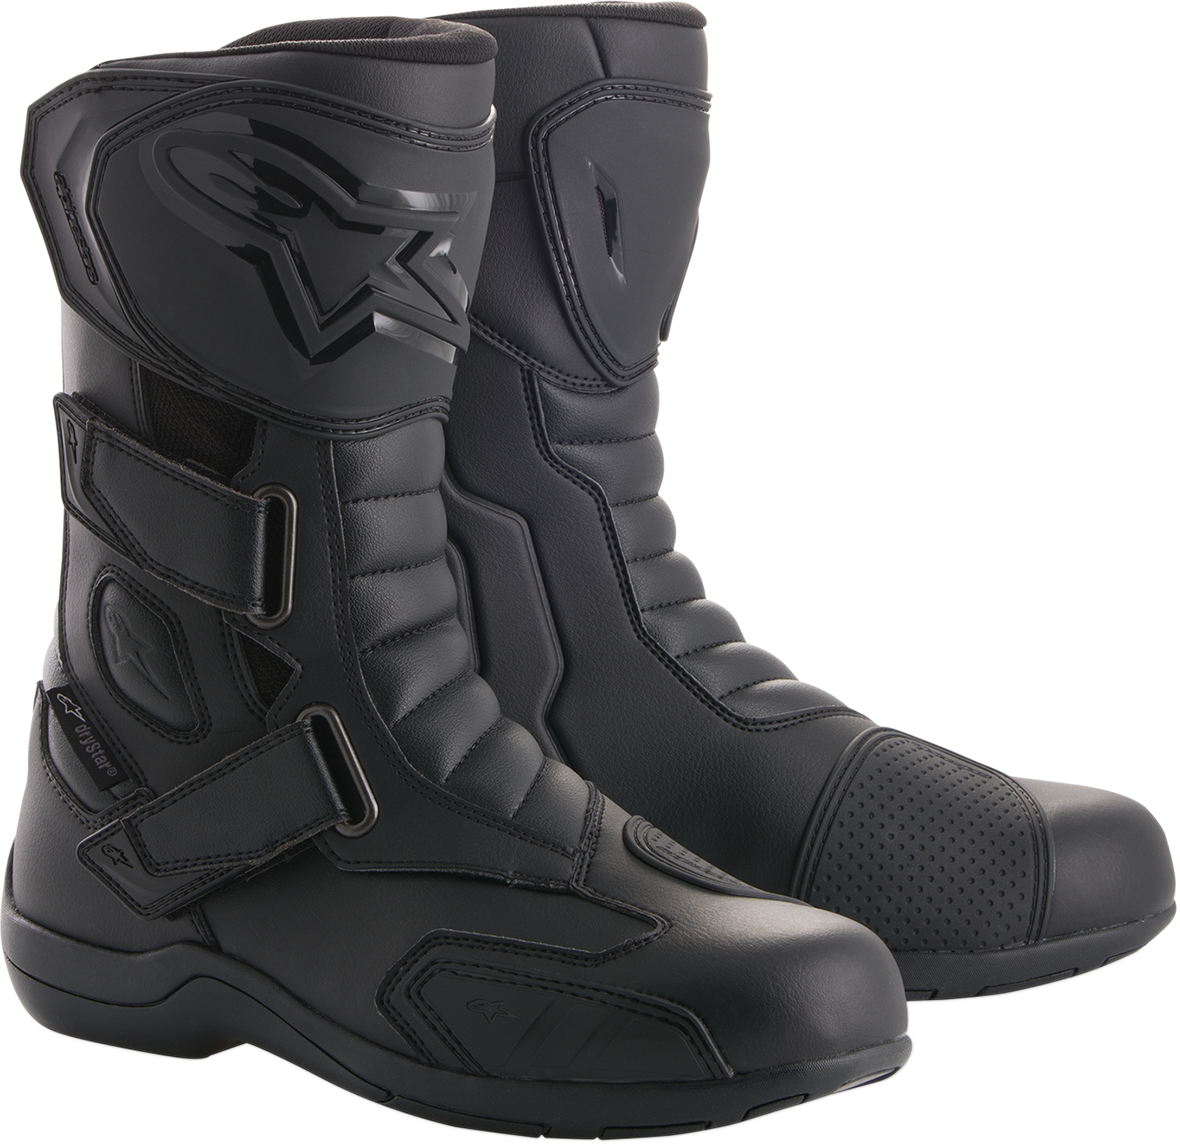 Alpinestars Mens Radon Drystar Black Motorcycle Riding Street Road Racing Boots